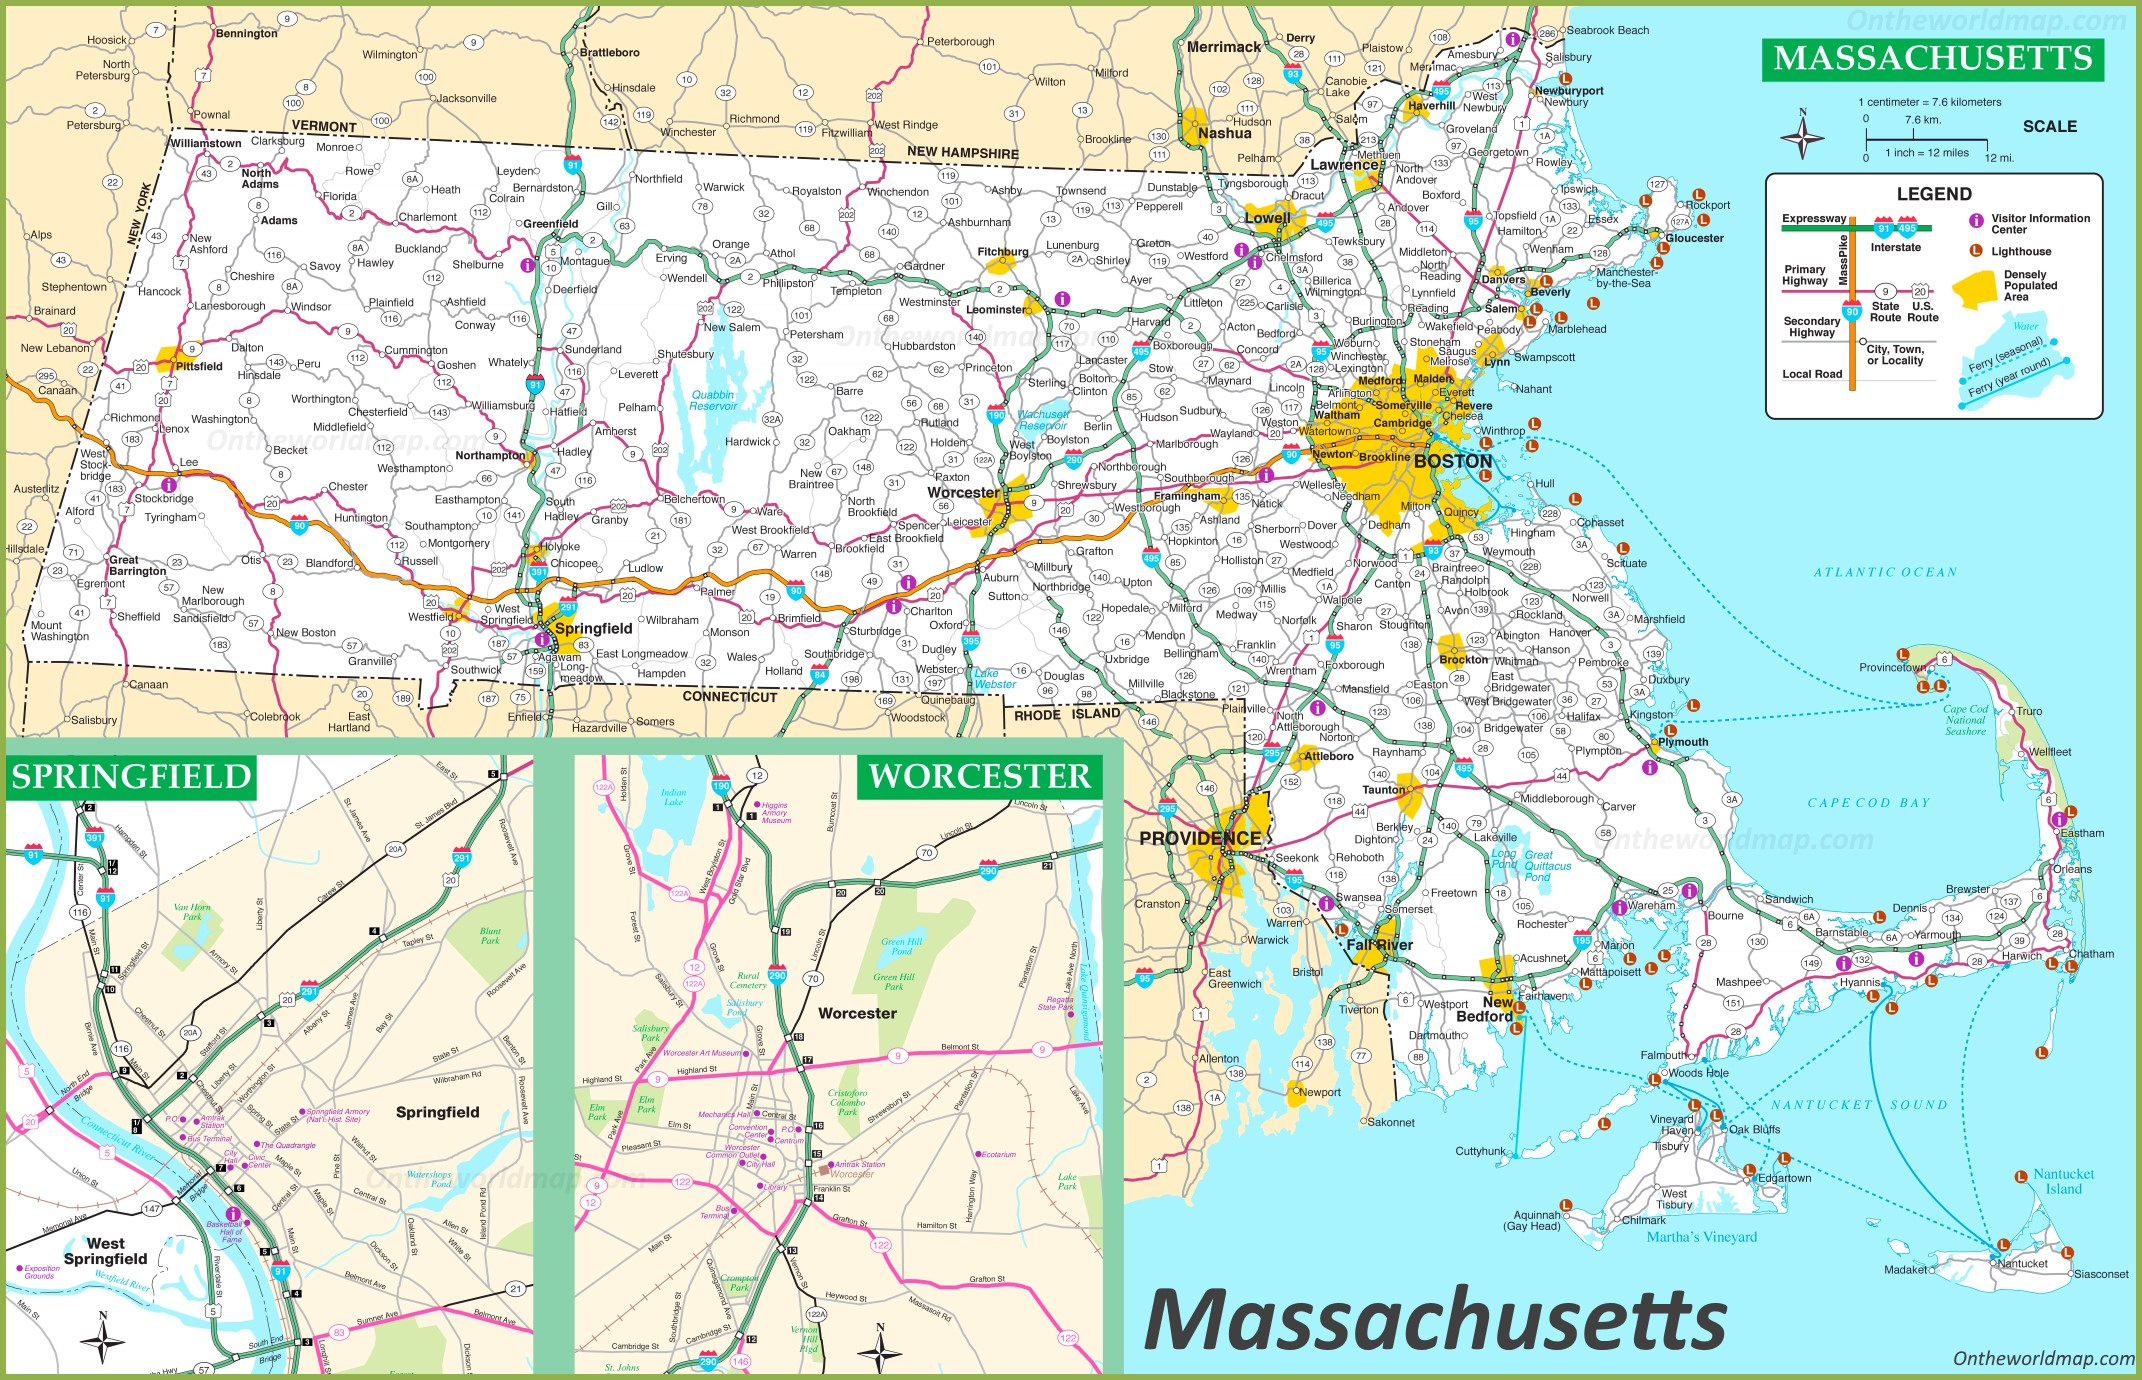 Maps Of Massachusetts Massachusetts road map